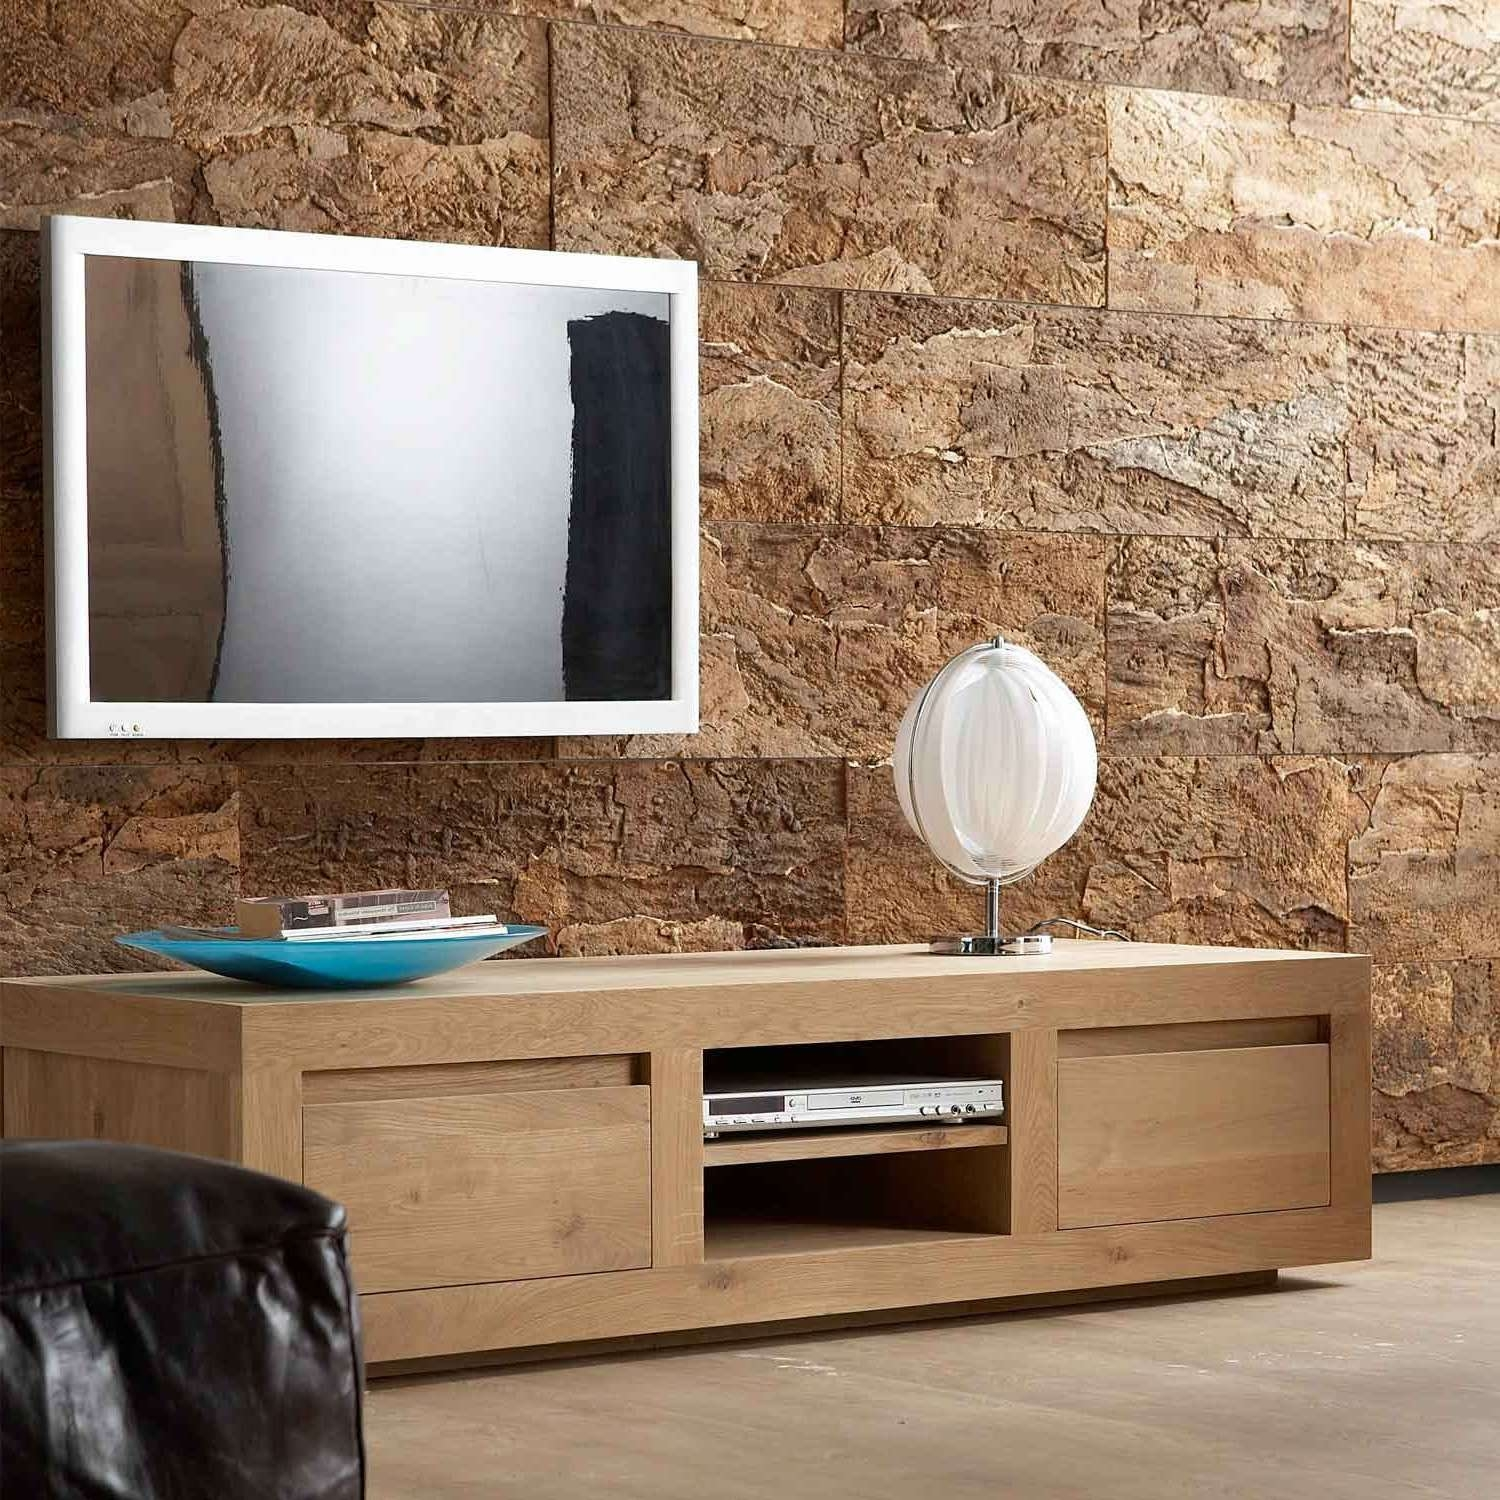 Home Design Modern Black Tv Stand With Storage Unit Feat Floating Regarding Modern Oak Tv Stands (View 3 of 15)